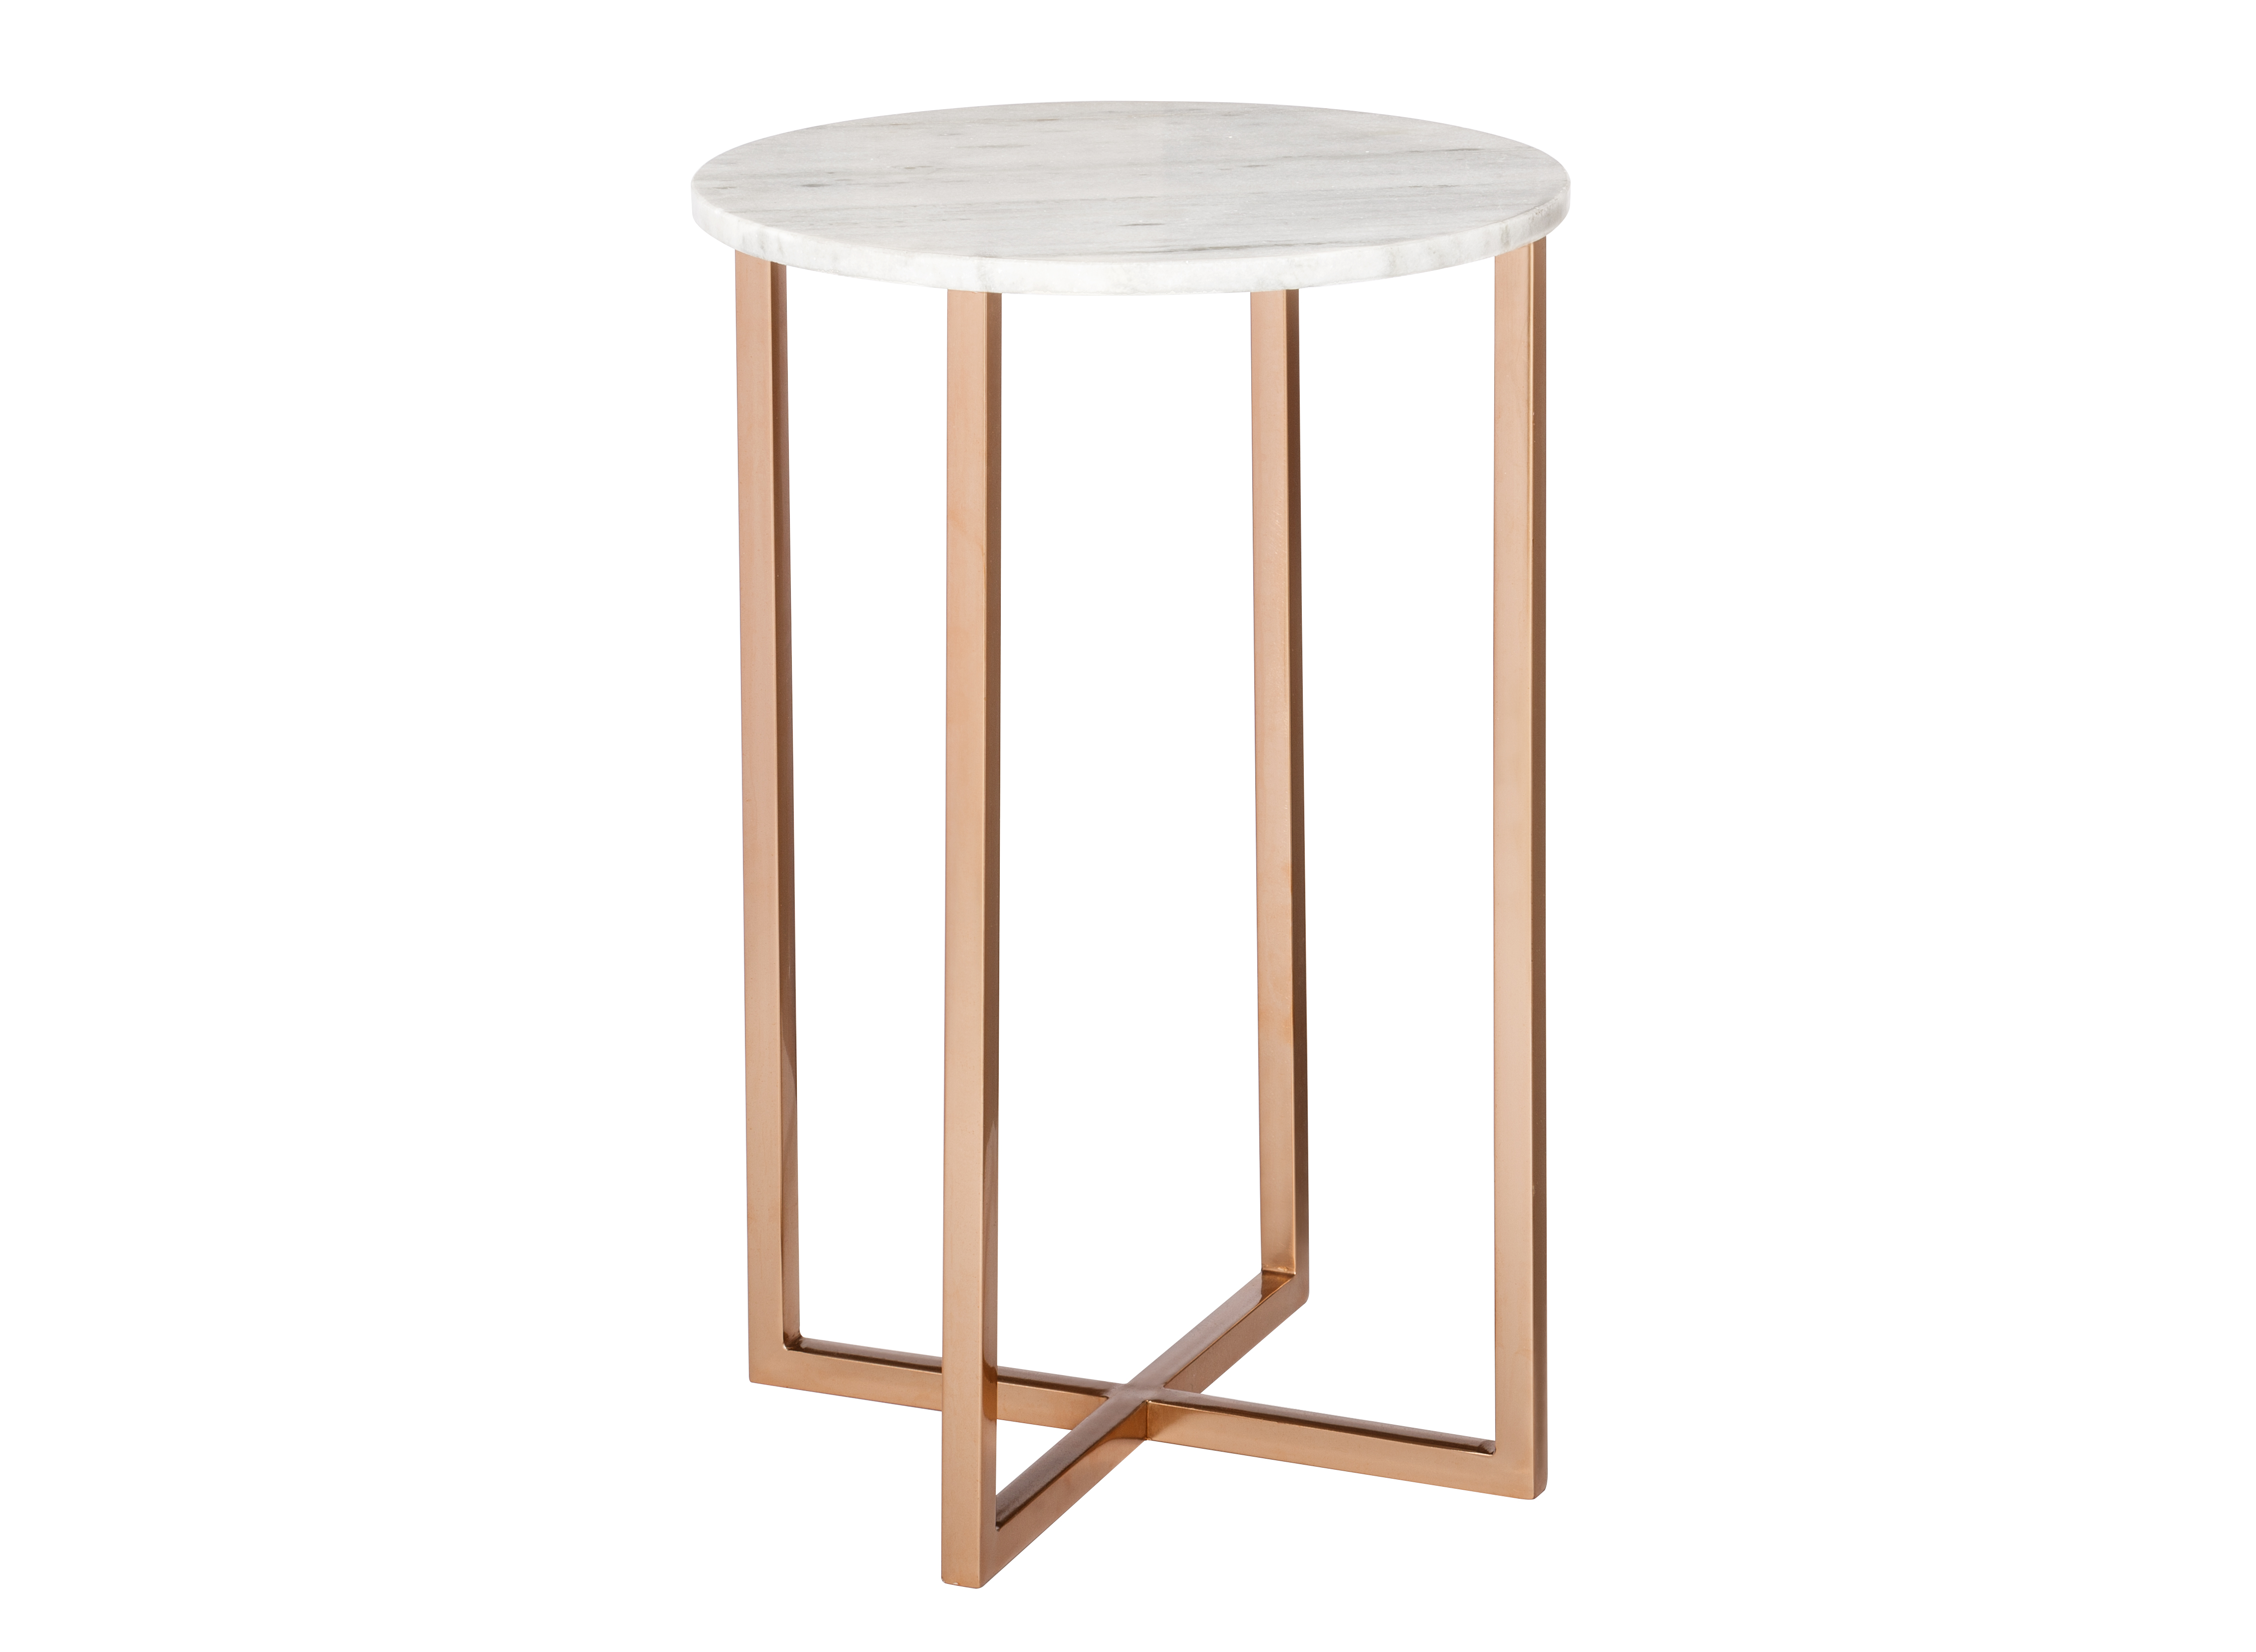 threshold fall look target accent table marble top nic set bunnings inch hairpin legs pool patio umbrellas retro wooden chairs tables with matching mirrors small coffee ideas